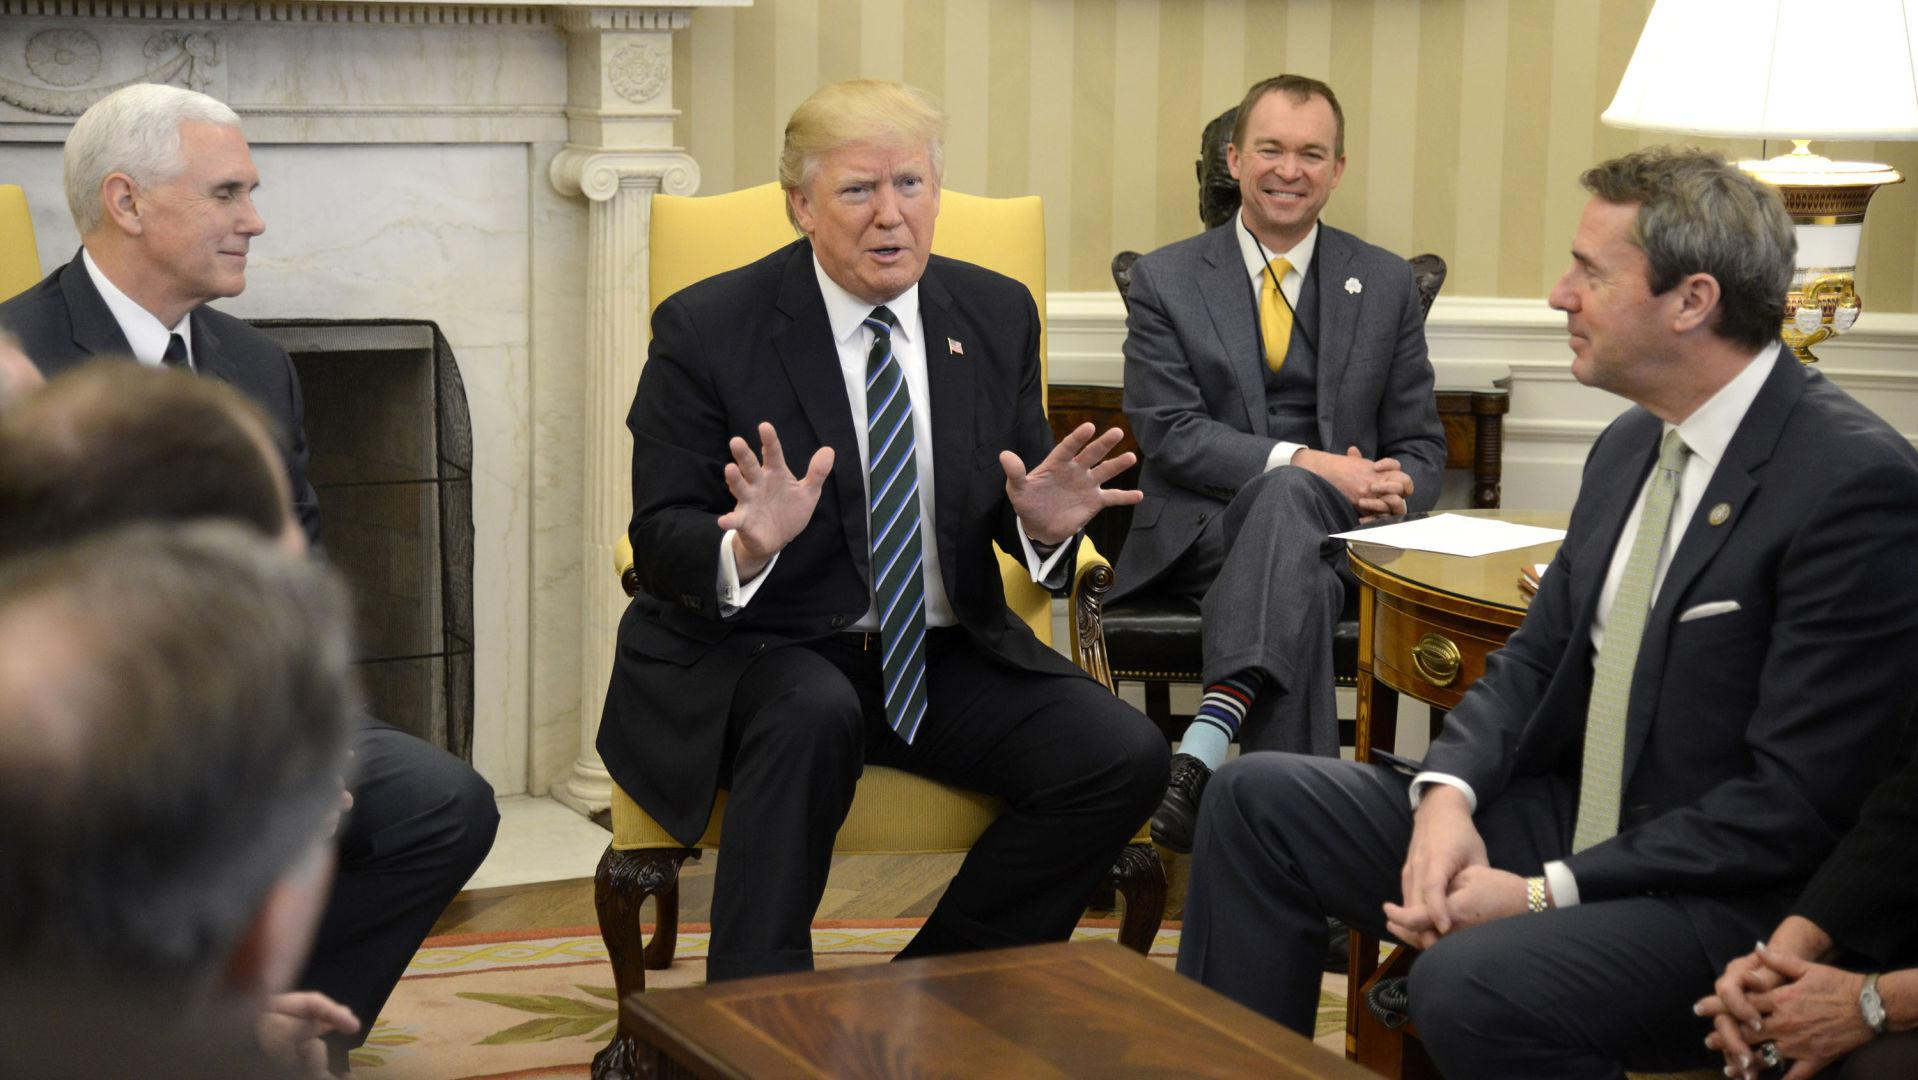 President Donald Trump (C) makes remarks as Vice President Mike Pence (L) listens as they meet with the Republican Study Committee in the Oval Office of the White House on March 17, 2017 in Washington, DC. (Mike Theiler/UPI/Abaca Press/TNS)